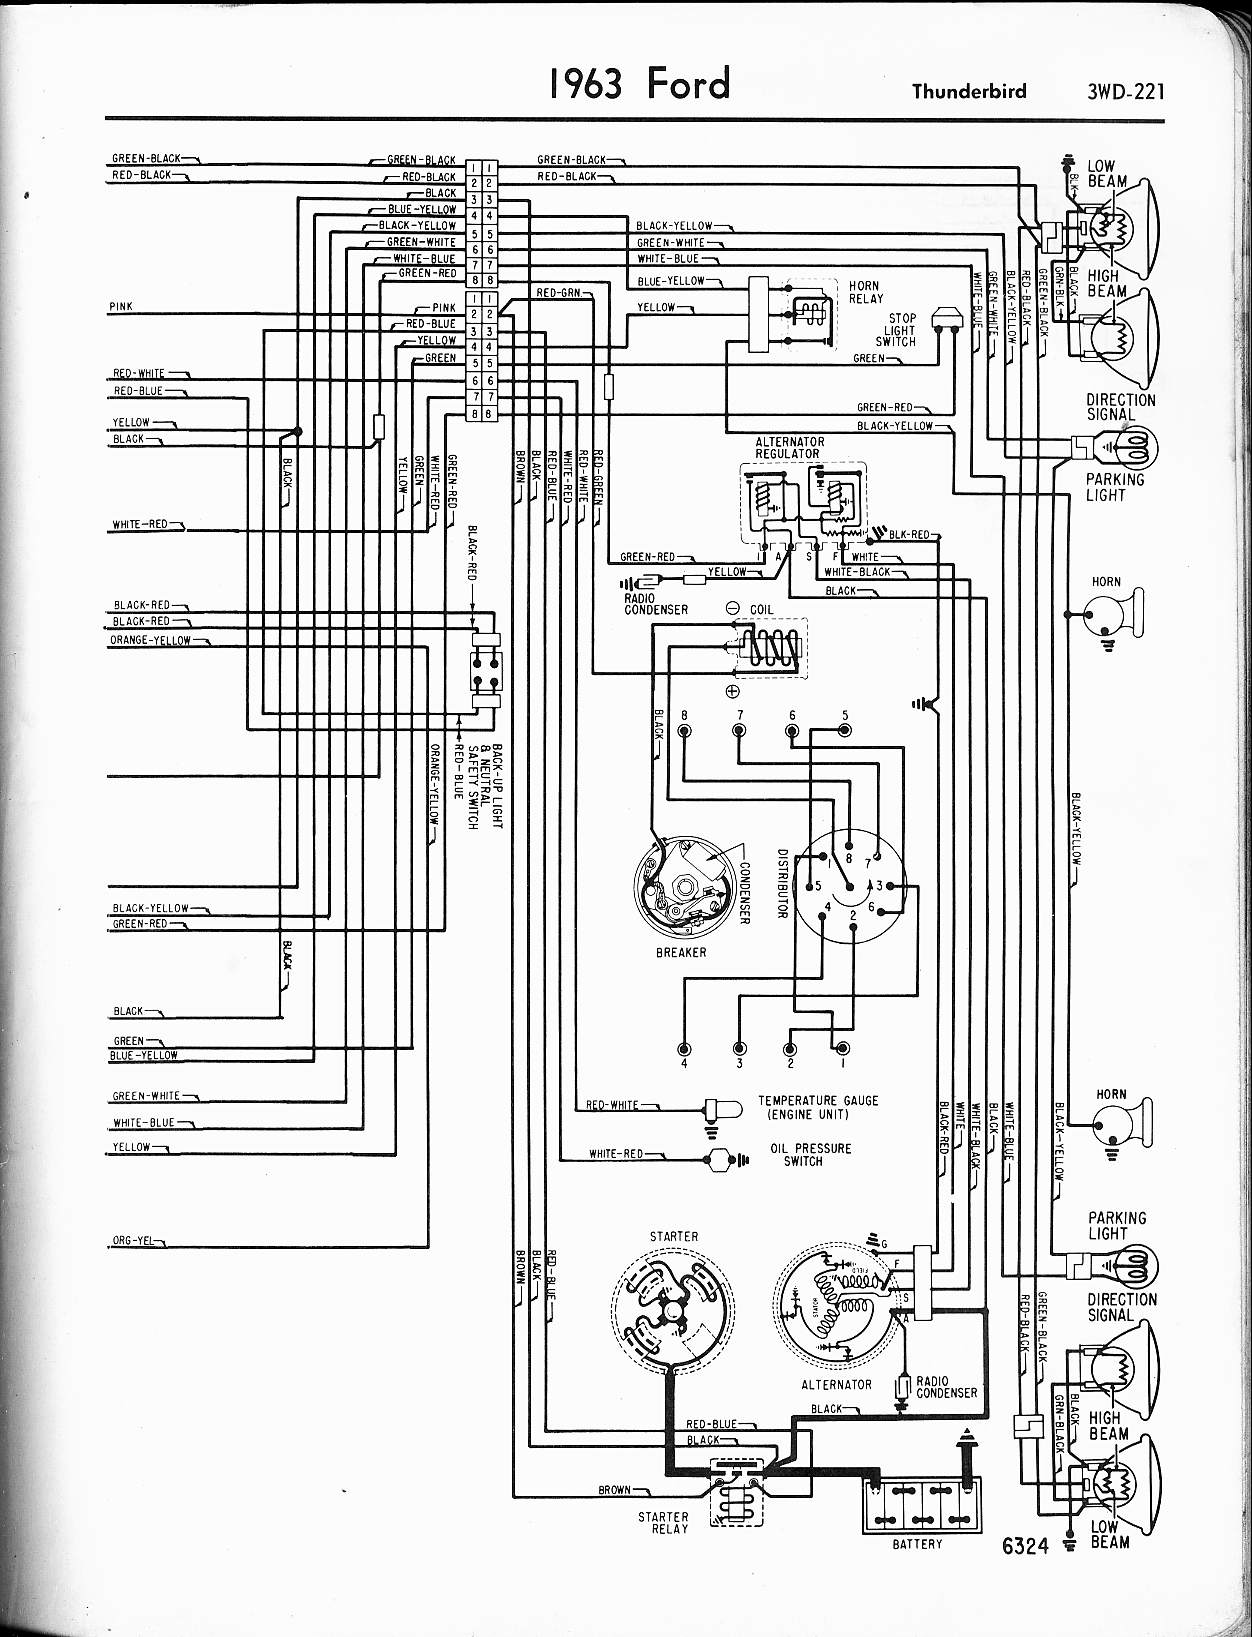 [SCHEMATICS_4ER]  1956 Thunderbird Wiring Diagram Pdf | Wiring Diagram | 1966 Ford F100 Engine Wiring Diagram Free Picture |  | Wiring Diagram - AutoScout24